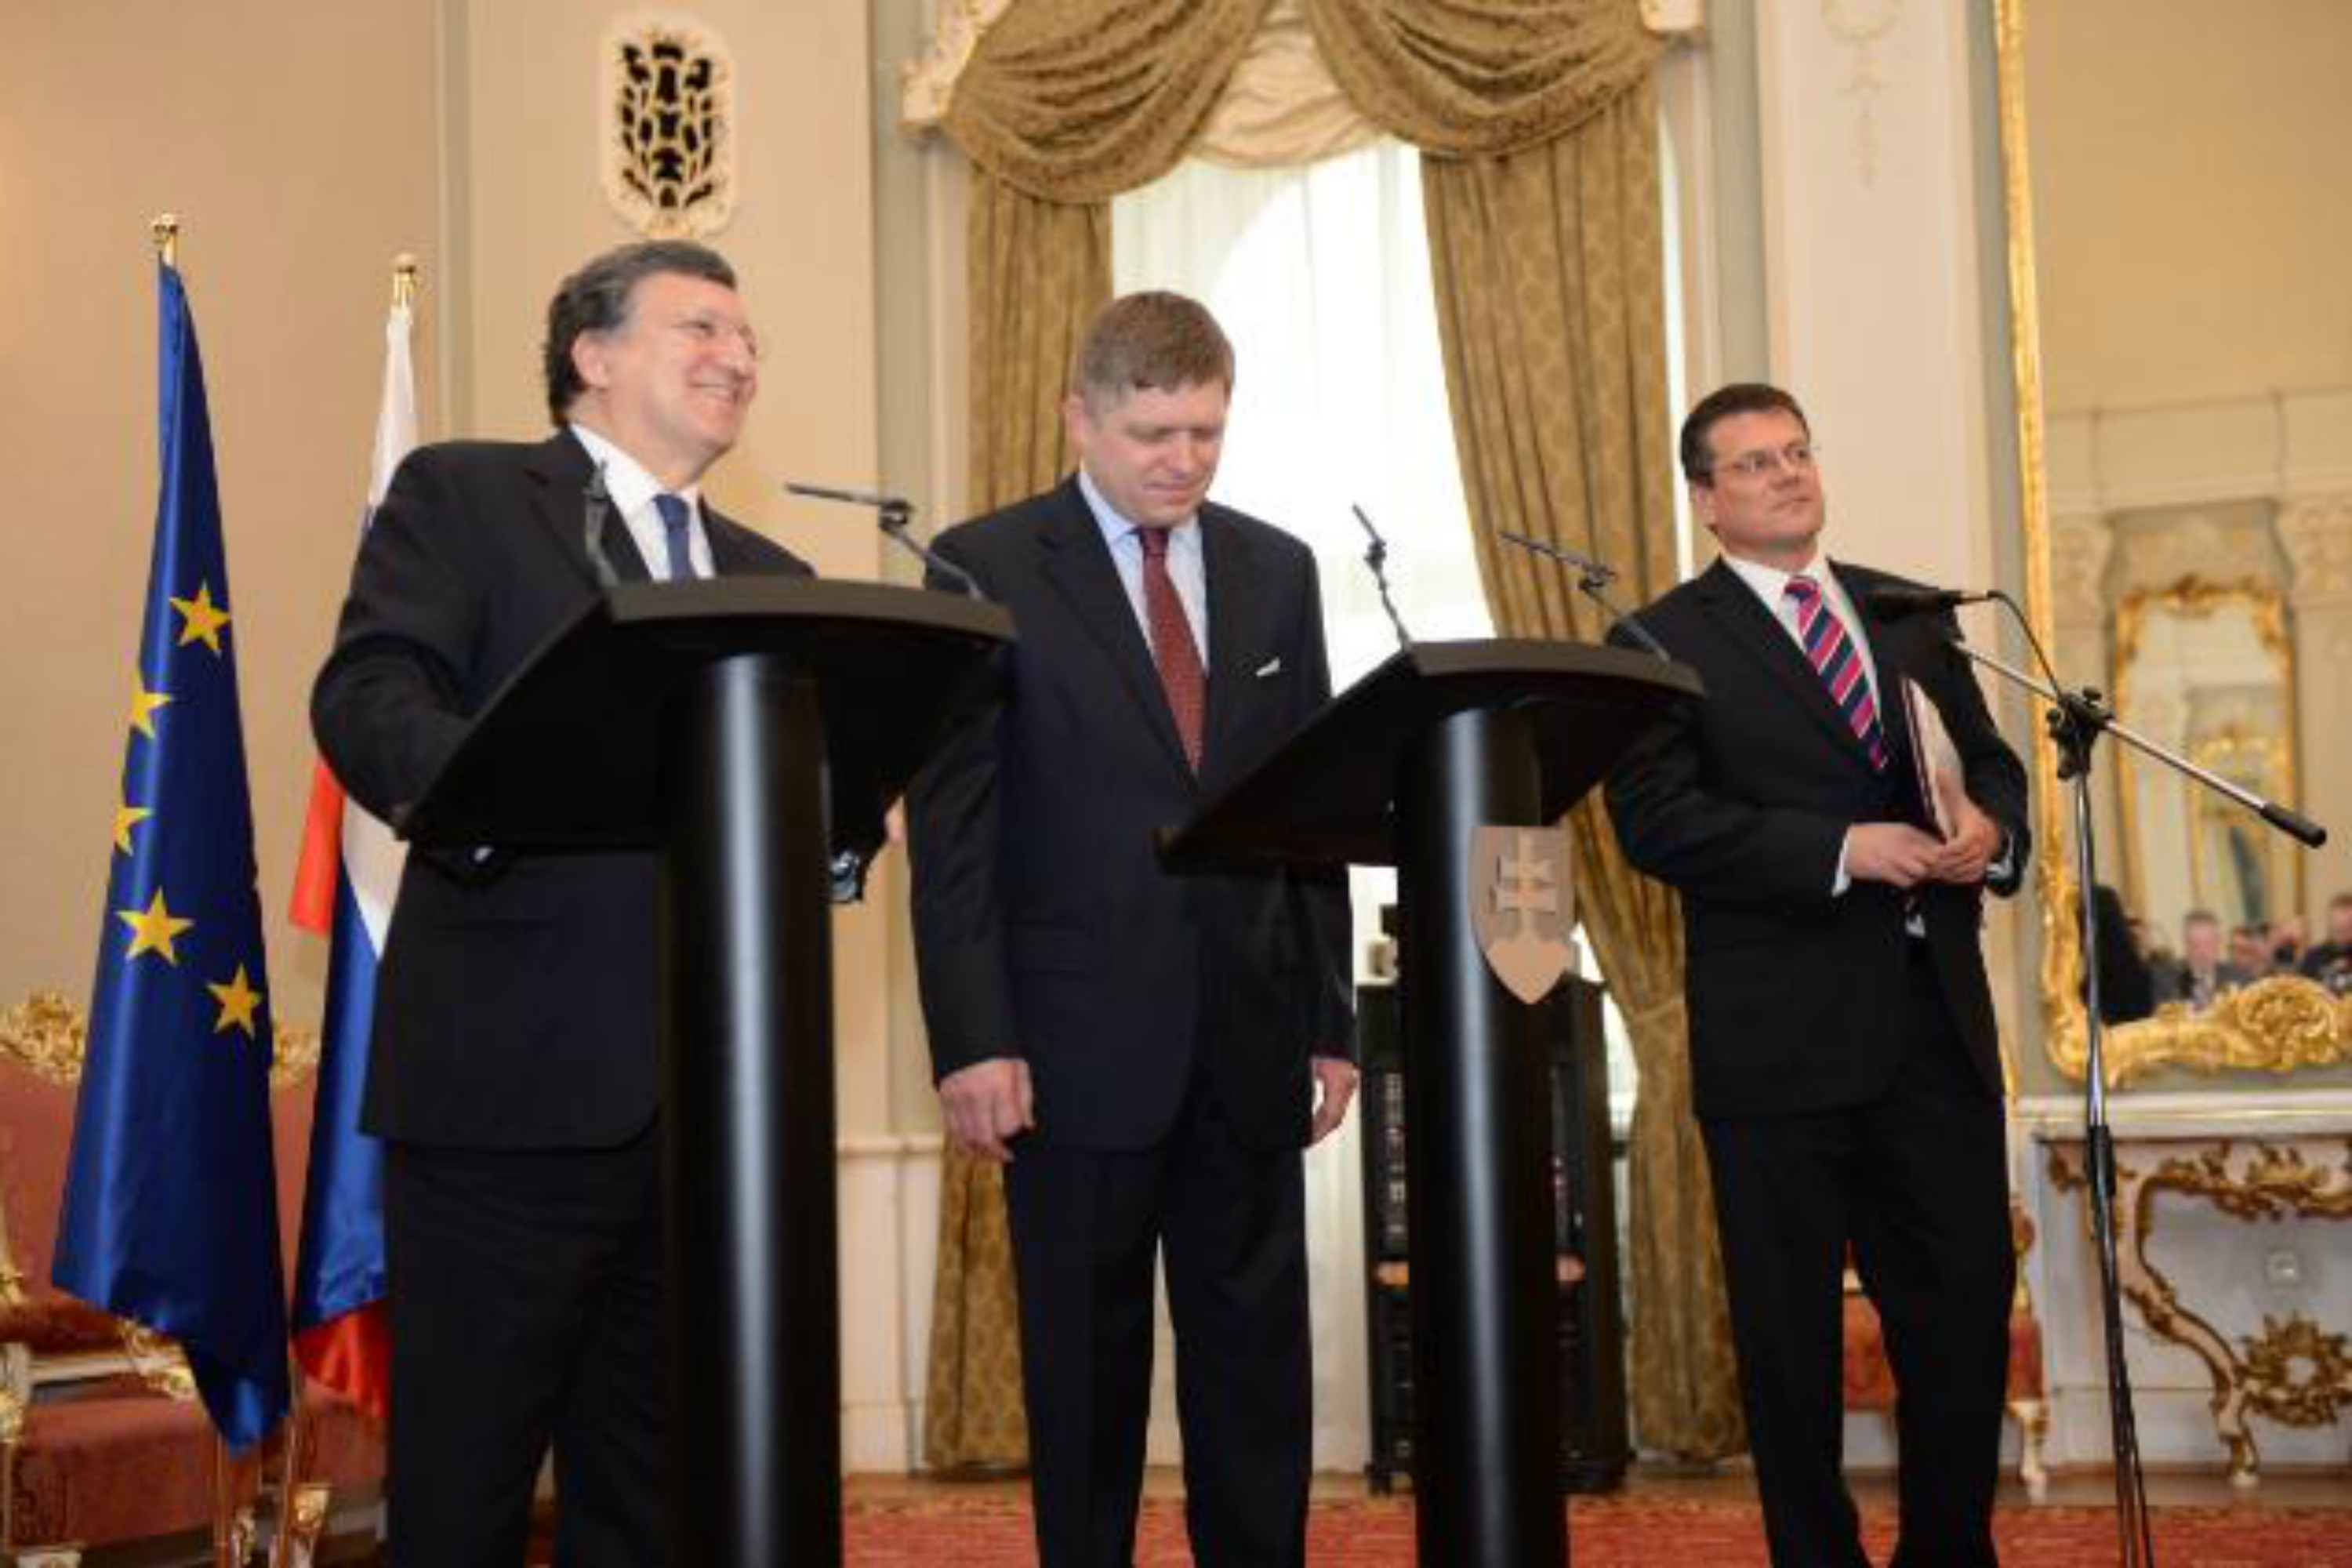 Commission President José Manuel Barroso, the Slovak Prime Minister Robert Fico and Slovak Commissioner Maroš Šef?ovi?